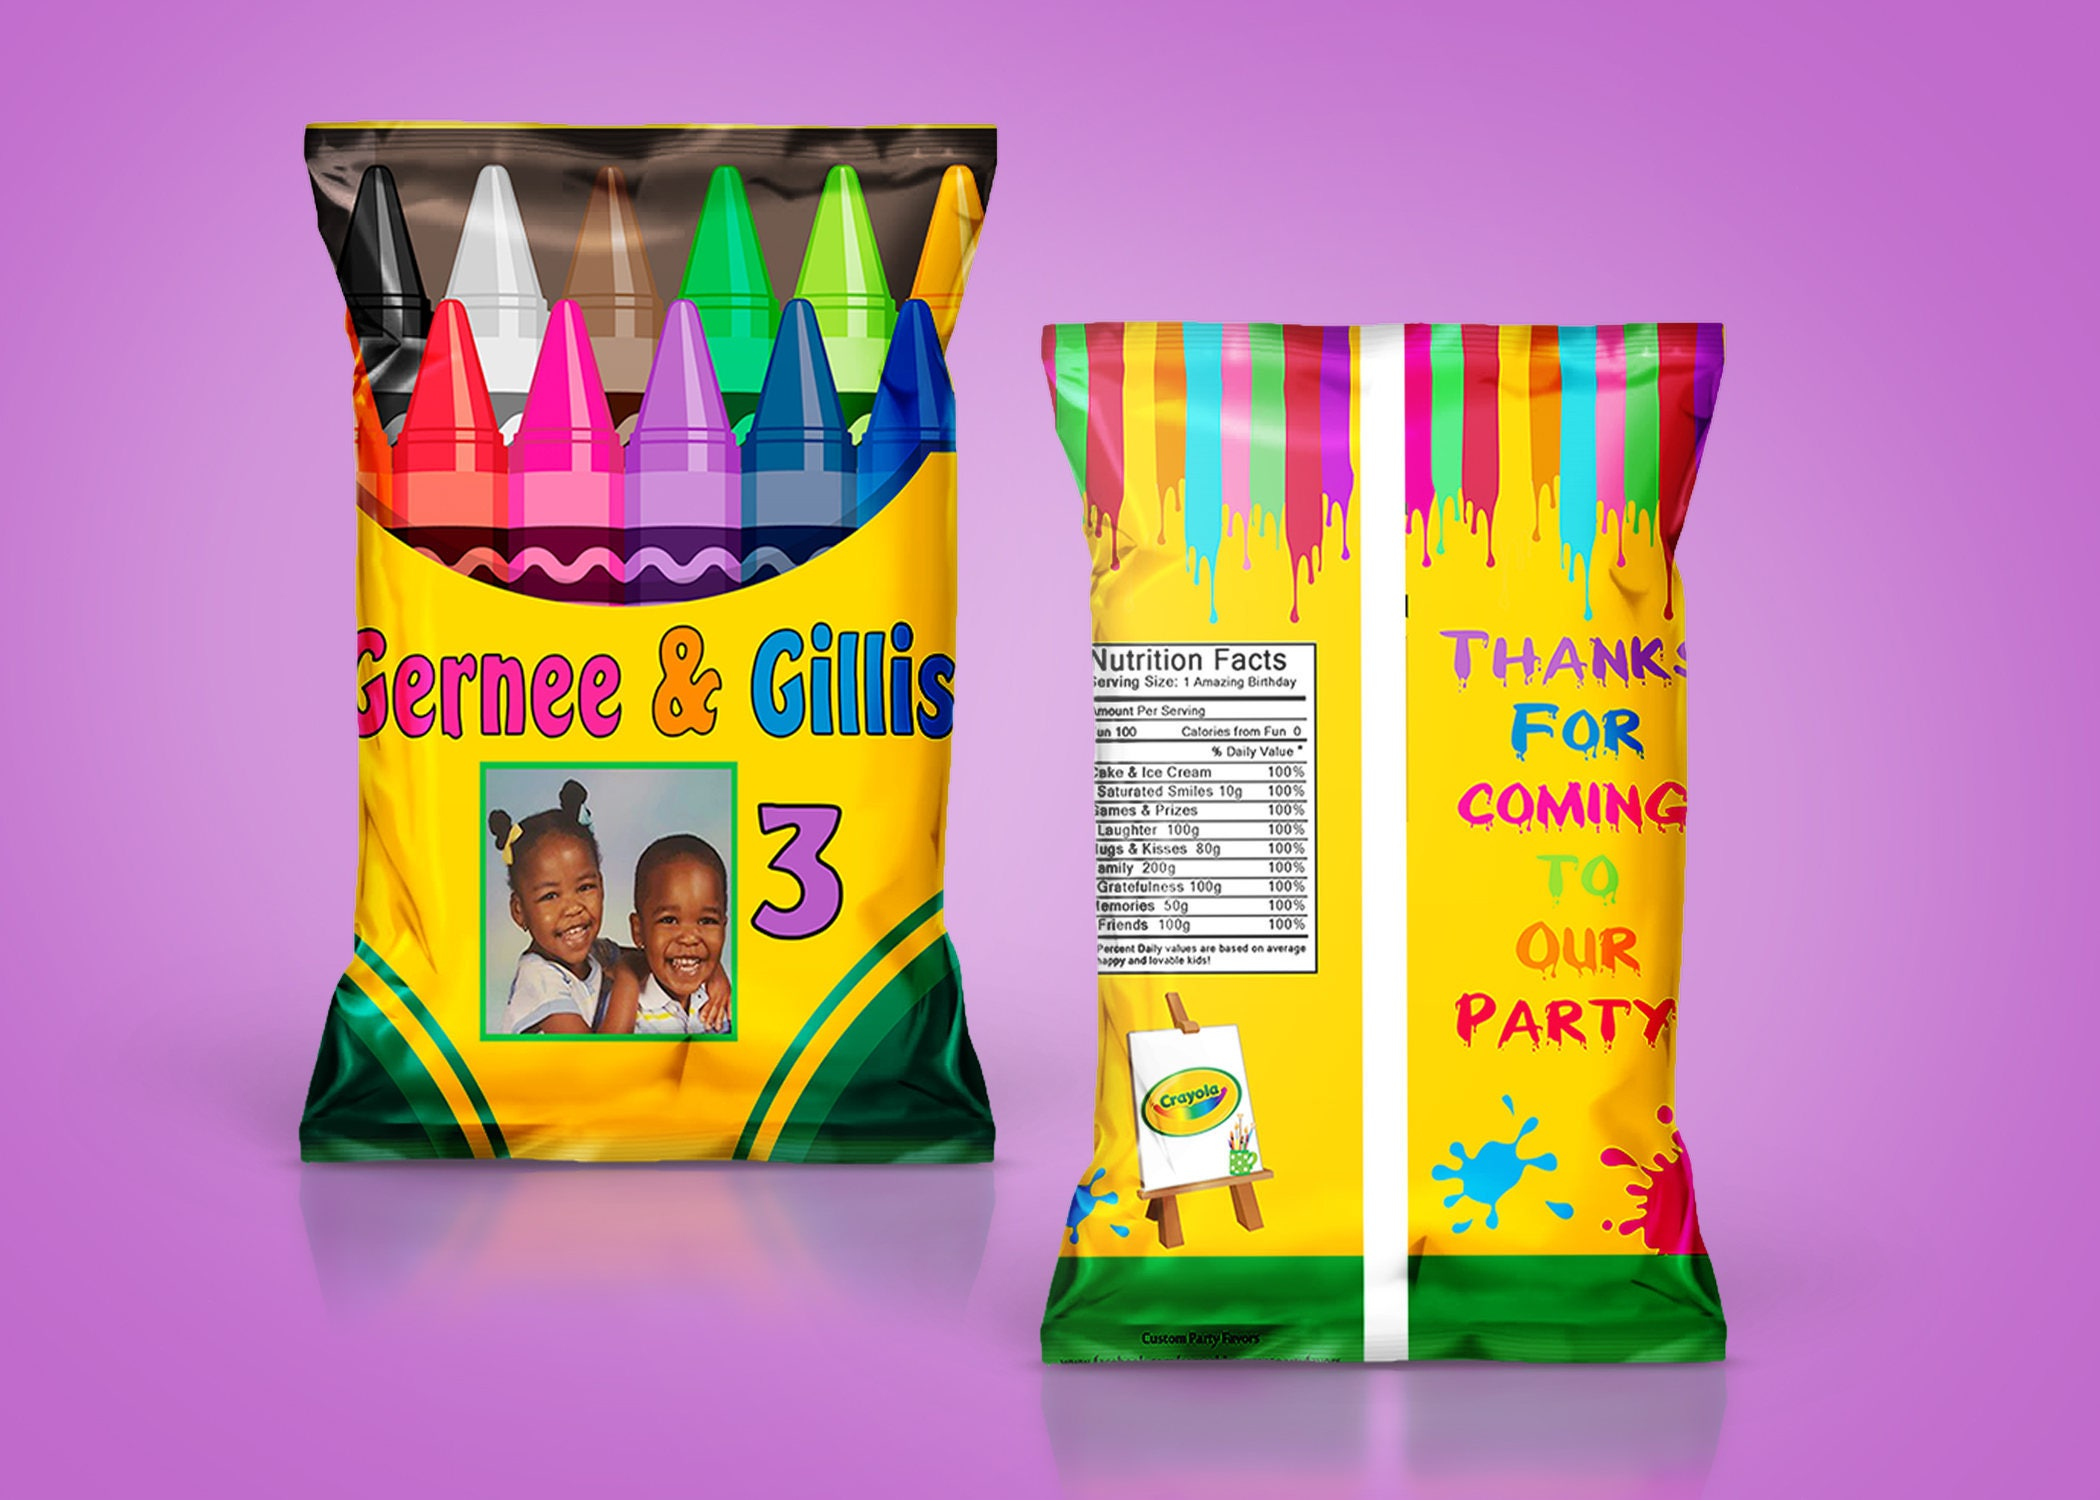 diy pdf template crayola crayon art party chip bags treat. Black Bedroom Furniture Sets. Home Design Ideas